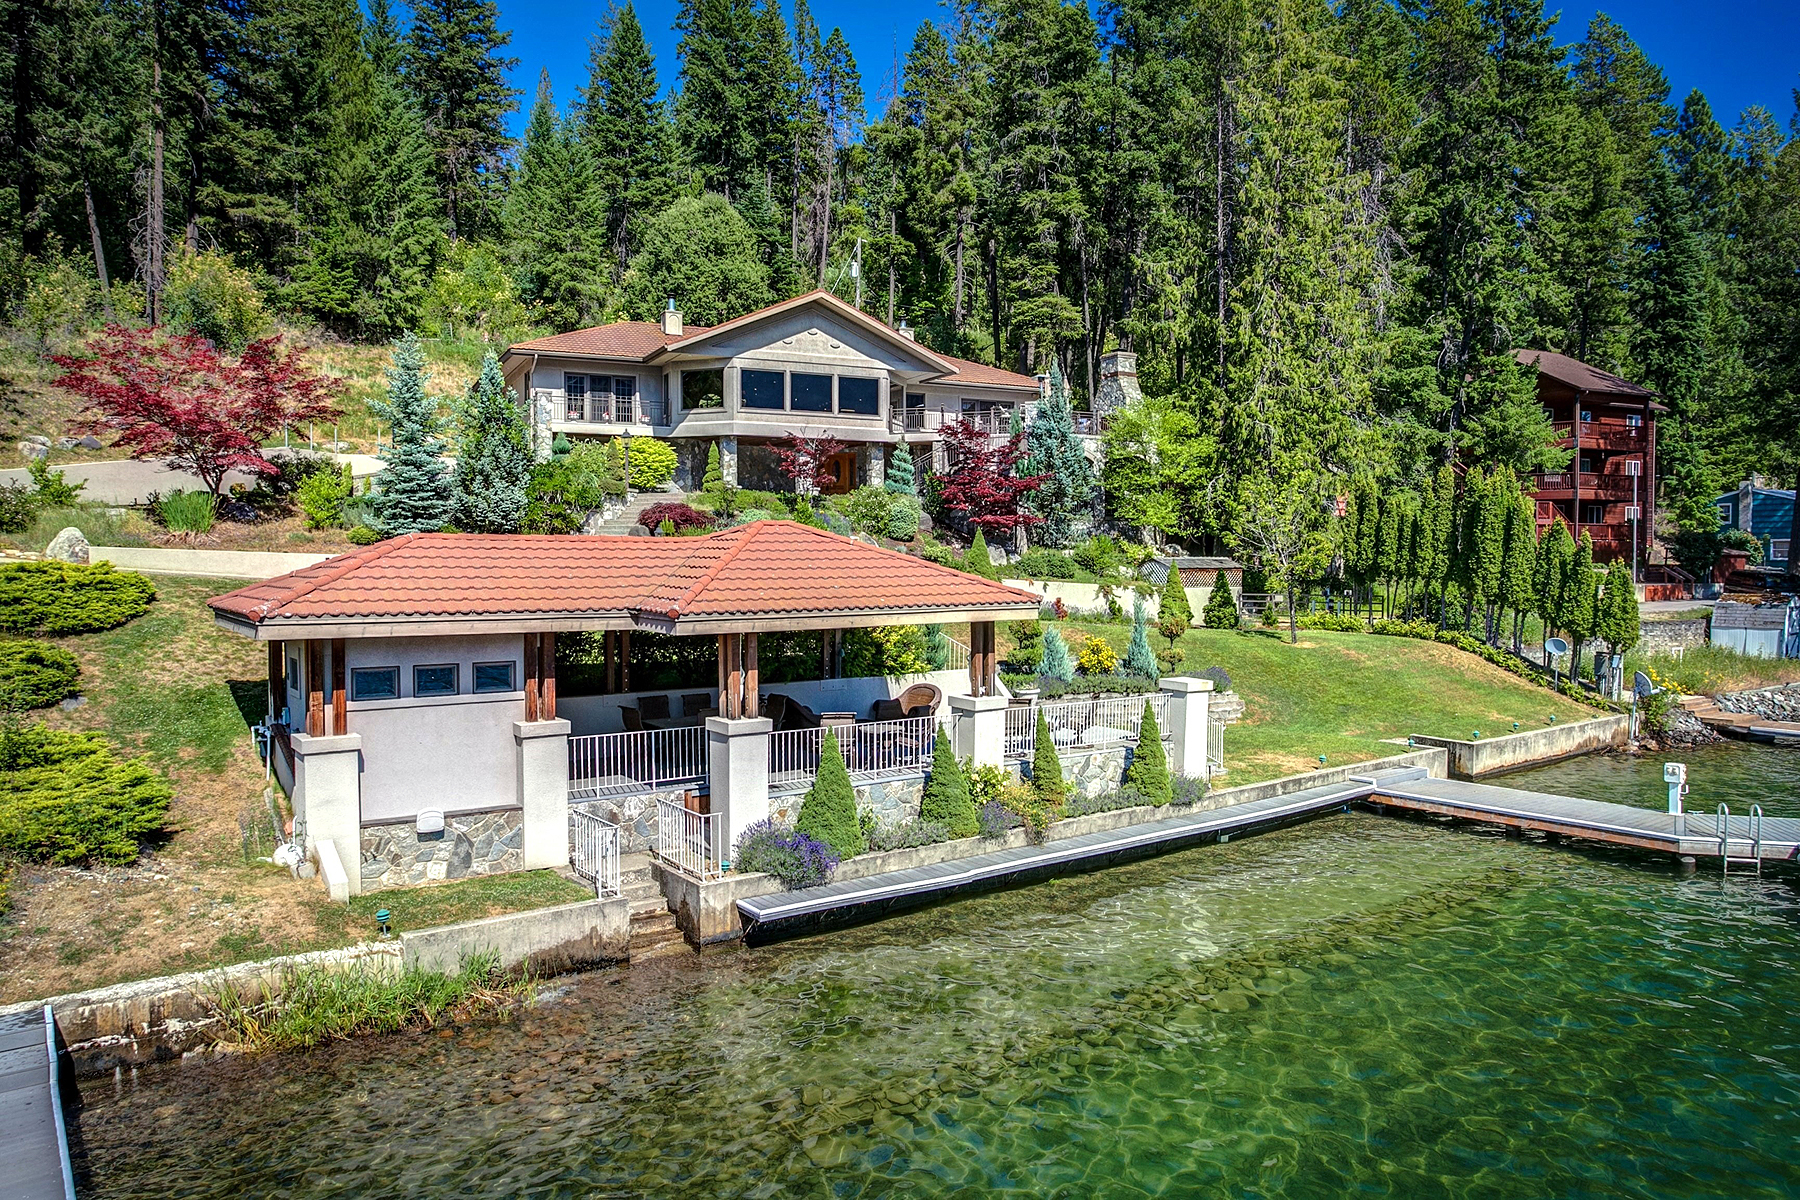 Single Family Home for Sale at Bottle Bay Luxury Waterfront 899 E Bottle Bay Rd, Sagle, Idaho, 83860 United States